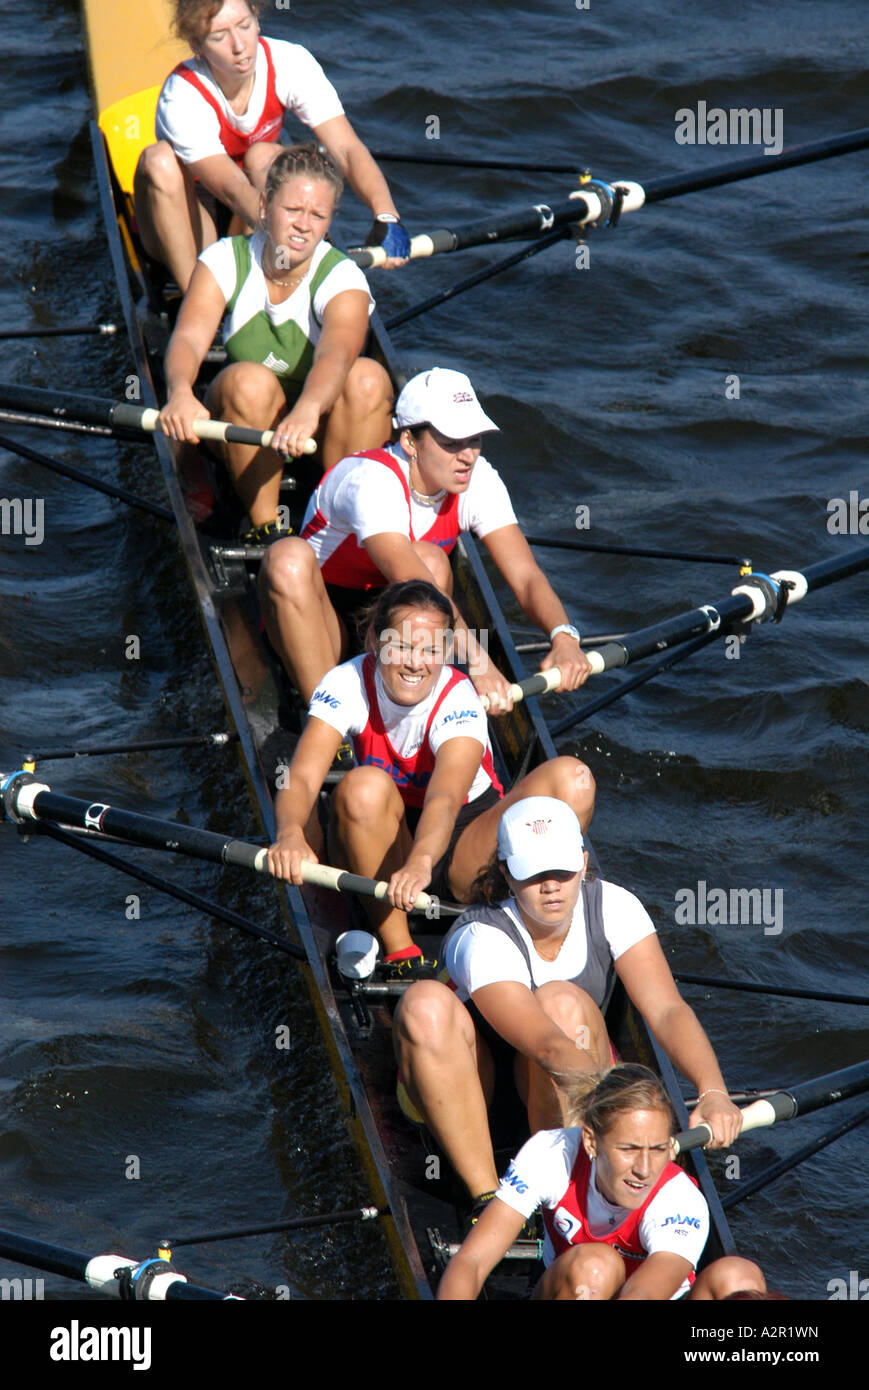 Female junior rowing team rowing ahead during a boat race on the River Vltava in Prague, Czech Republic, on September - Stock Image